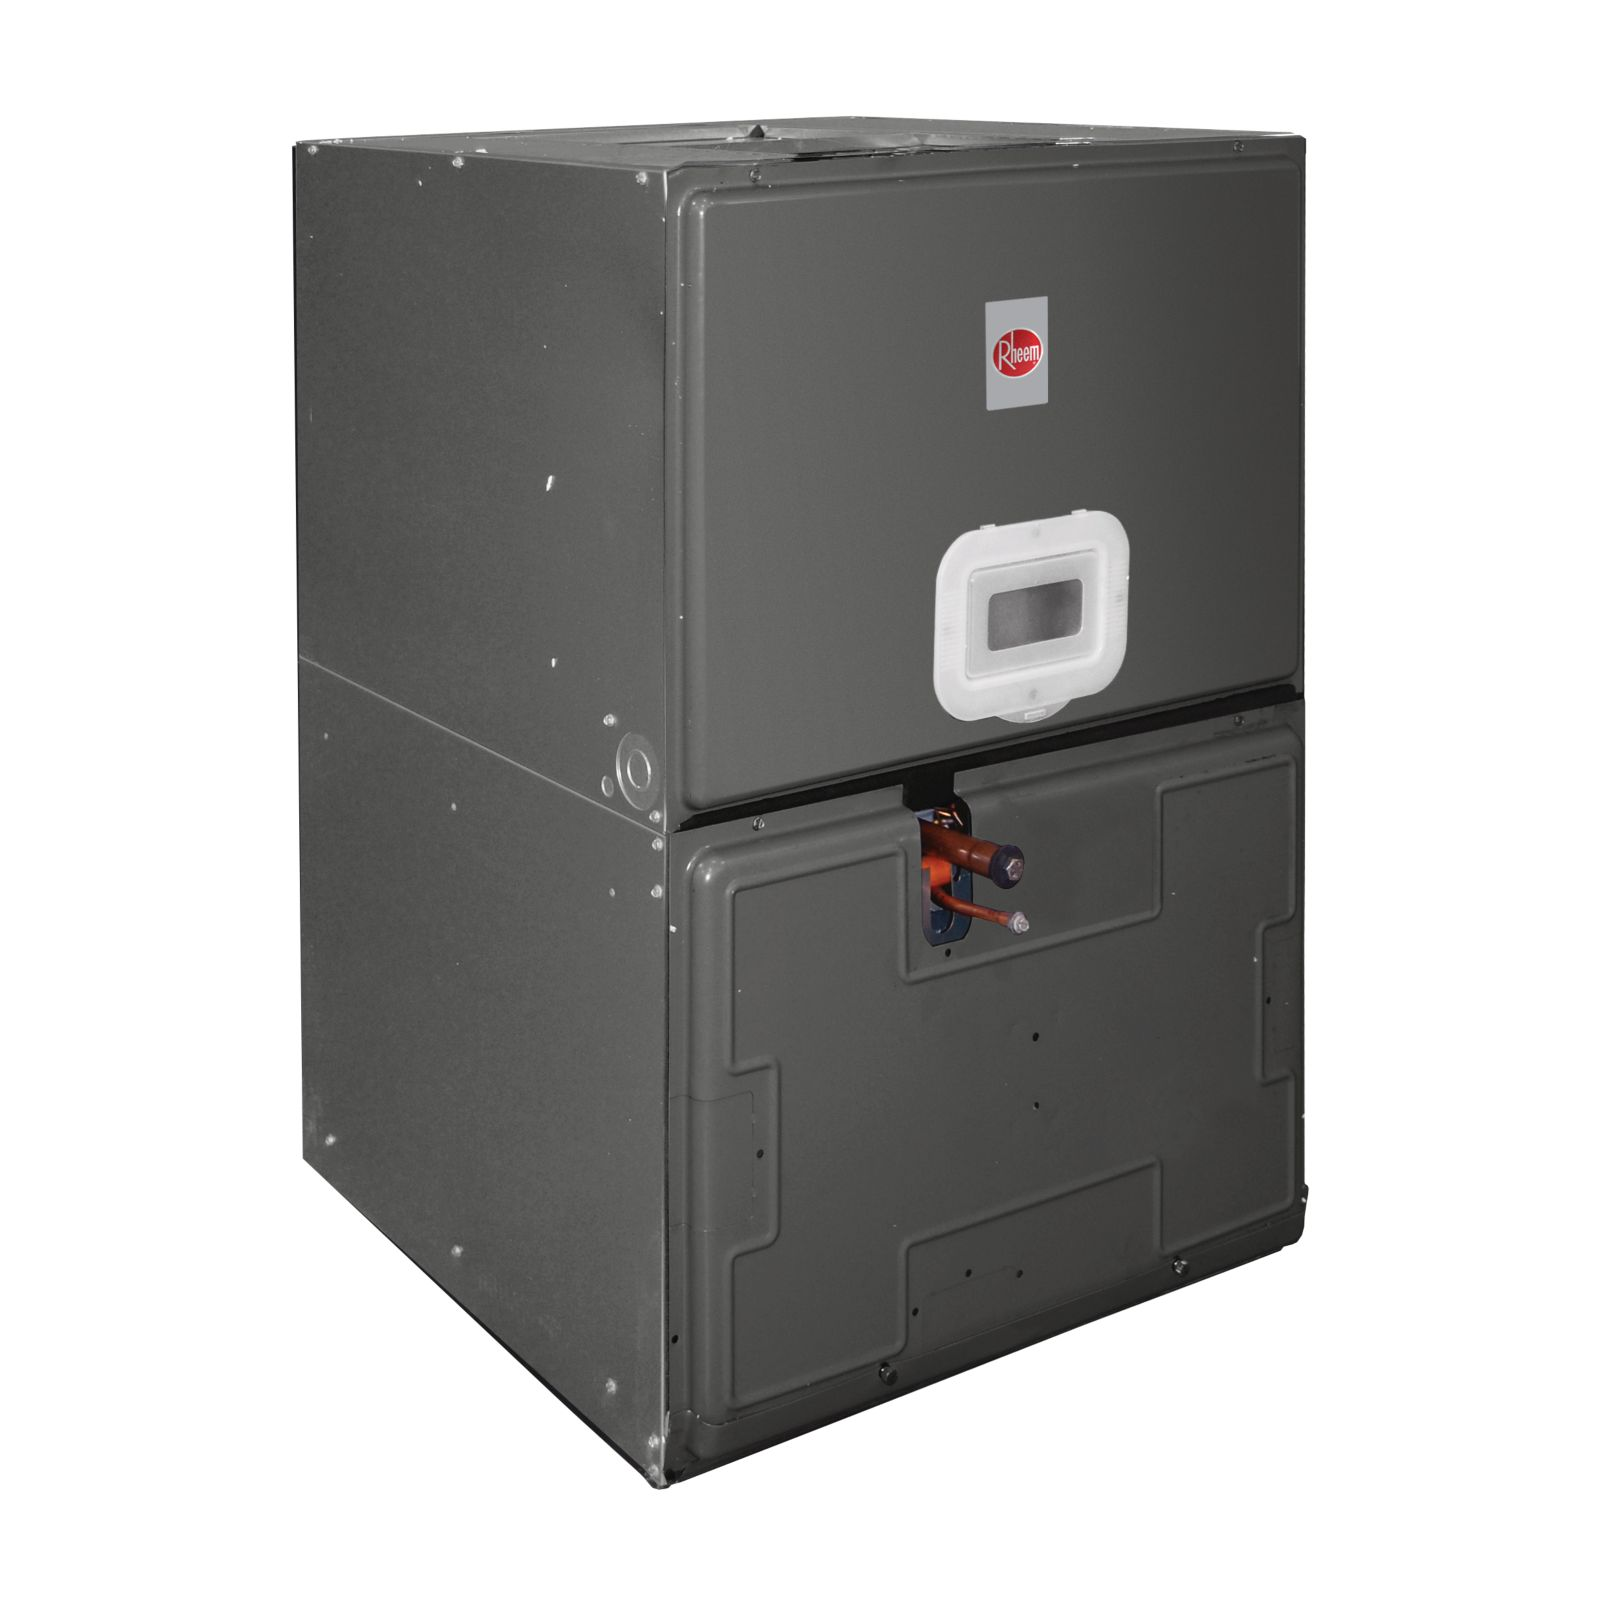 Rheem RBHP-25J11SH7 - RBHP Series - Multiposition Air Handler With X-13 (ECM) Motor, Up To 16 SEER R410A, 10 KW Electric Heat